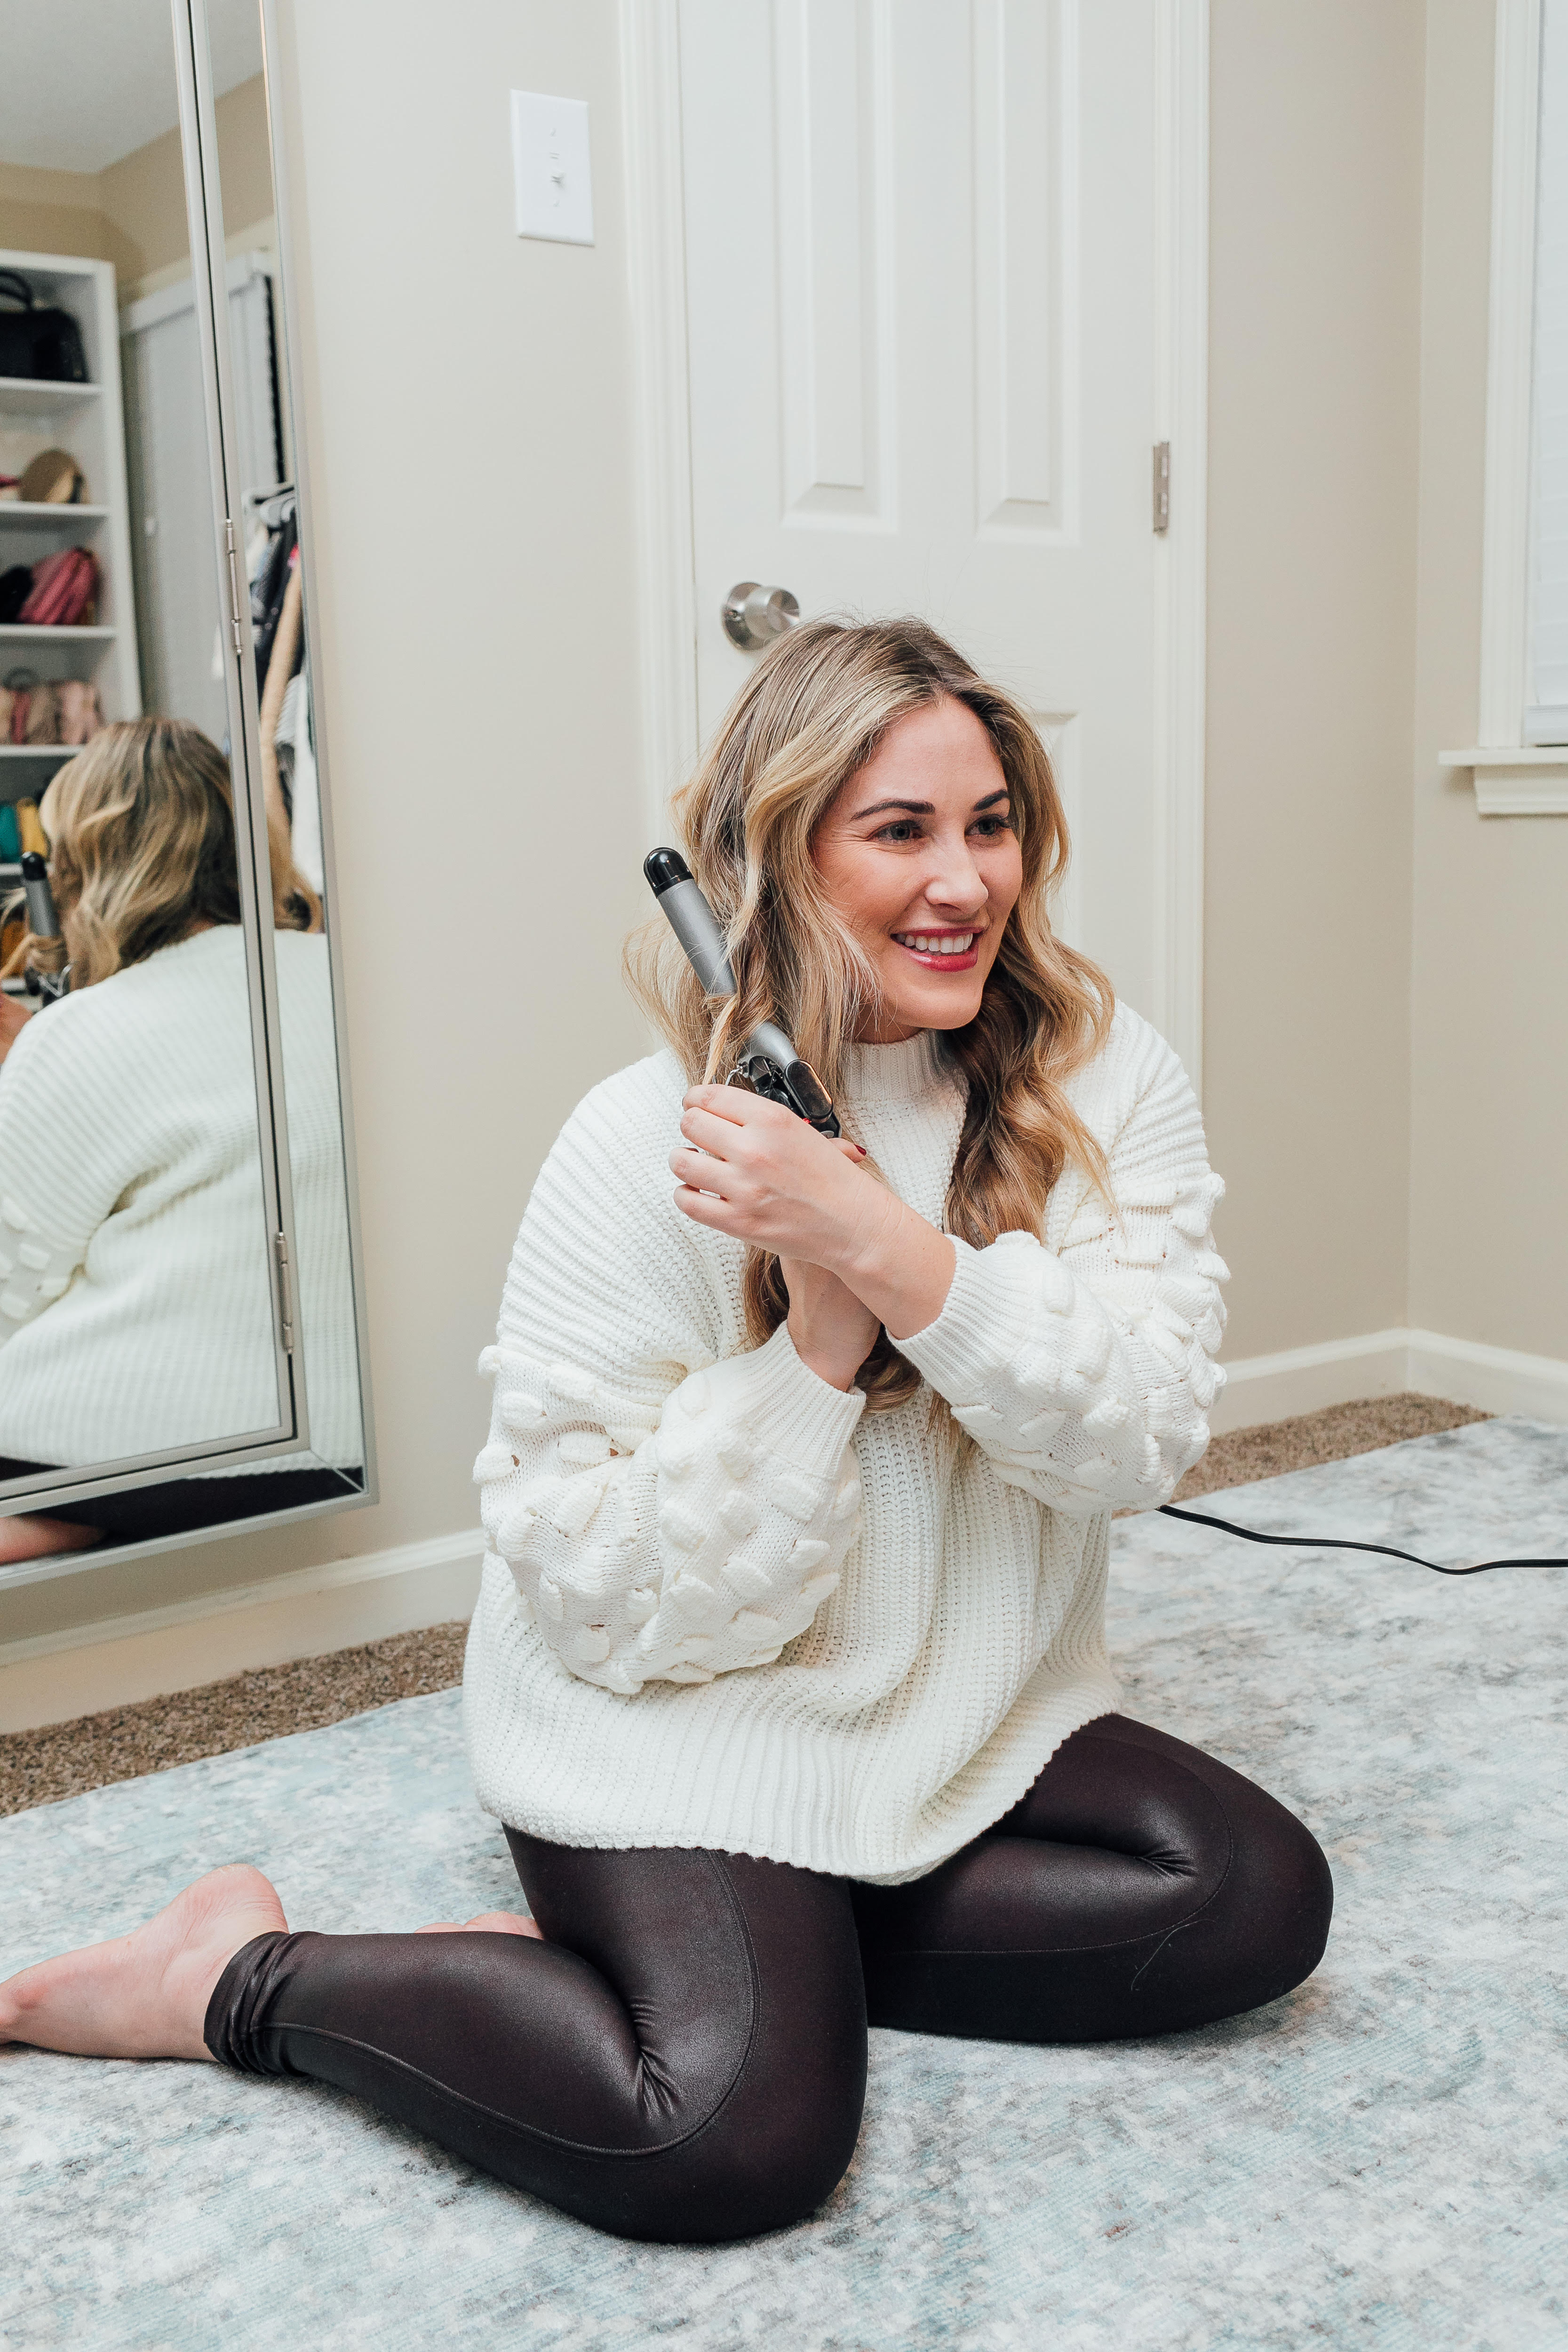 Hair Tutorial: How to Create Beach Waves with a Curling Iron